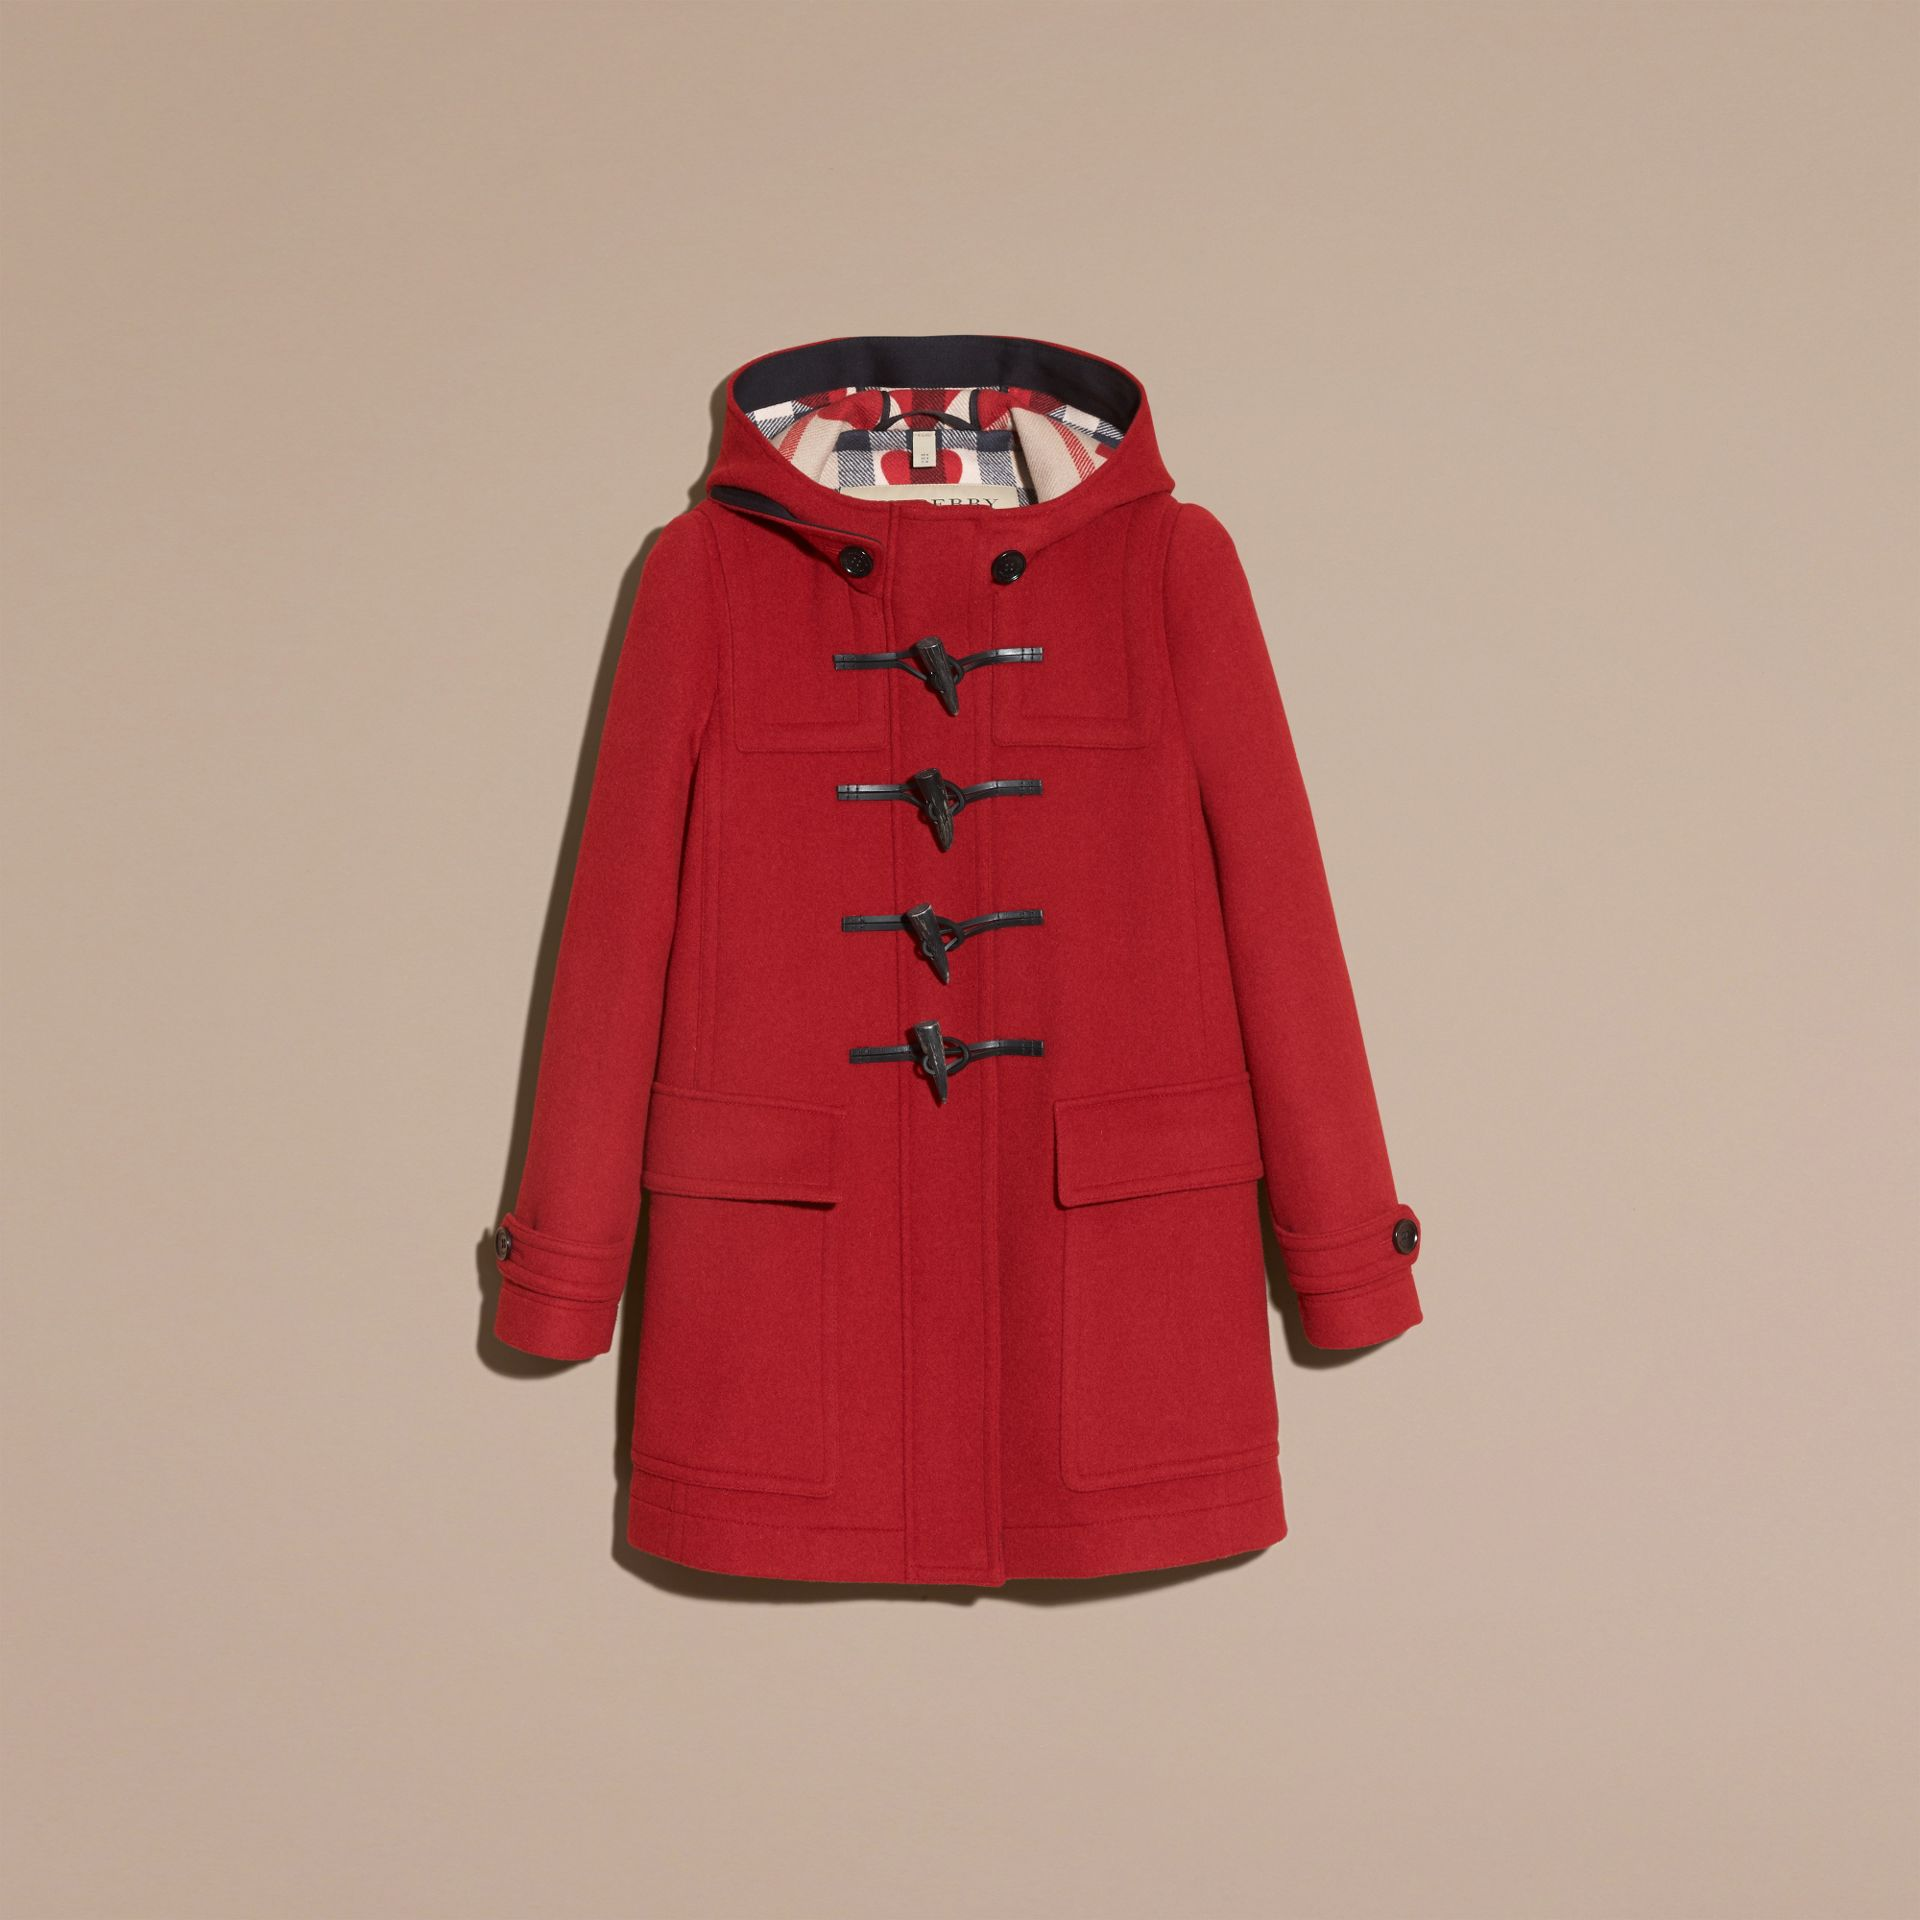 Windsor red Wool Duffle Coat with Check and Hearts Lining Windsor Red - gallery image 4